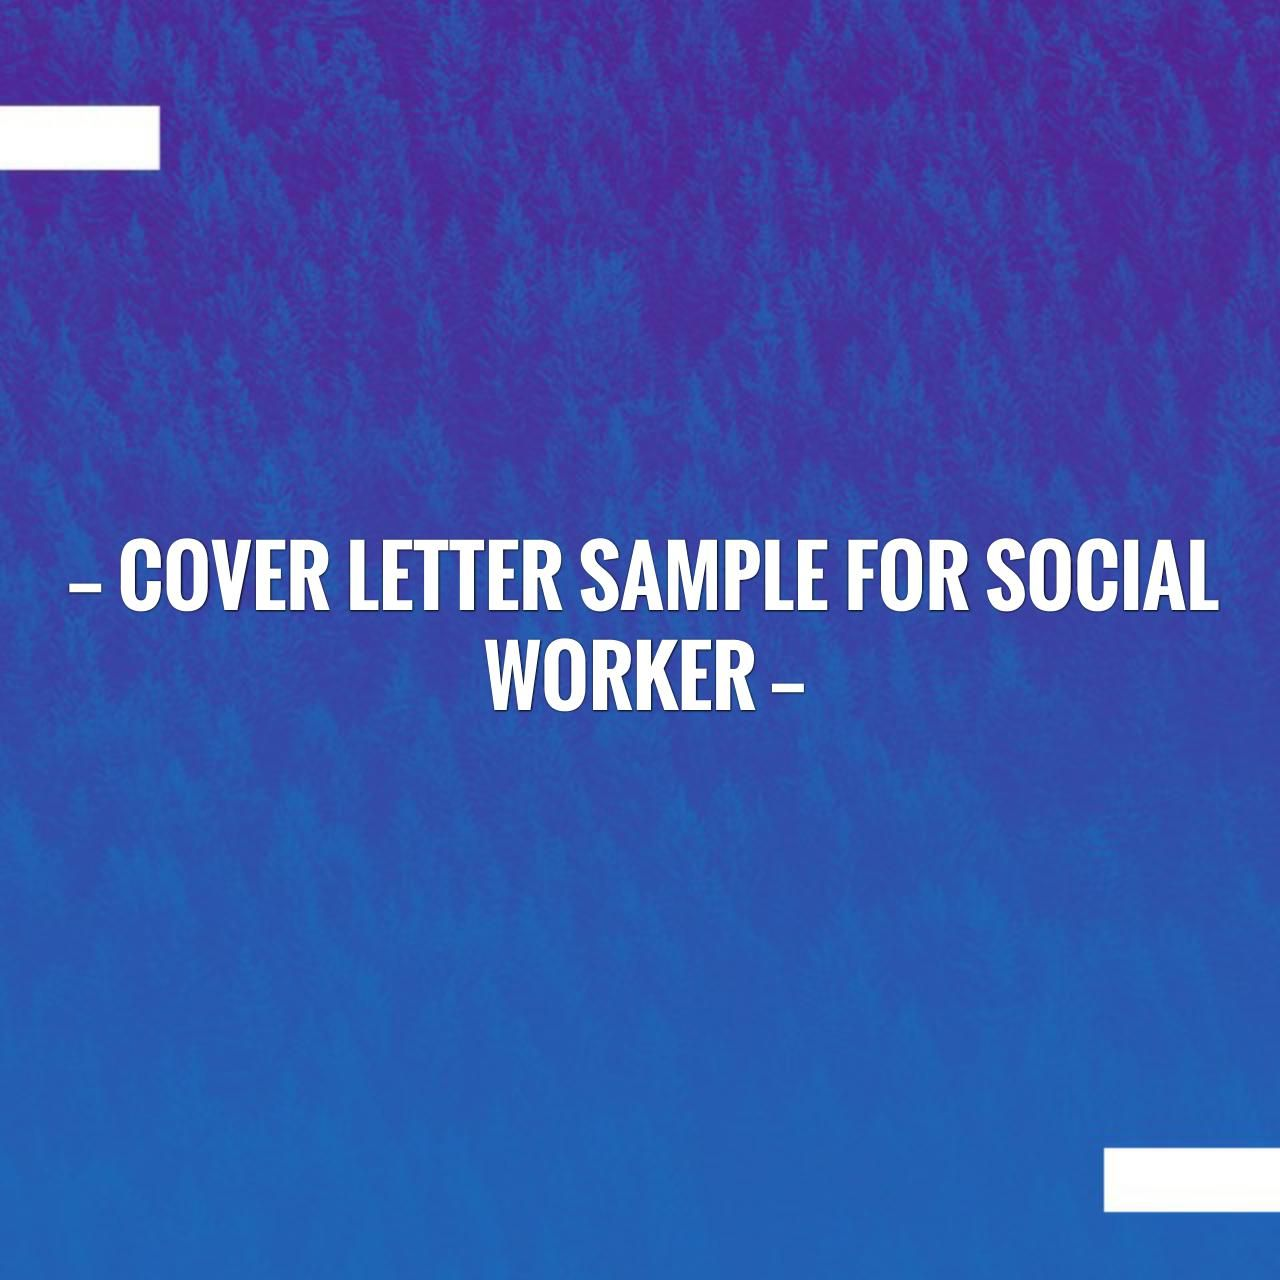 Check out my new post! Cover Letter Sample for Social